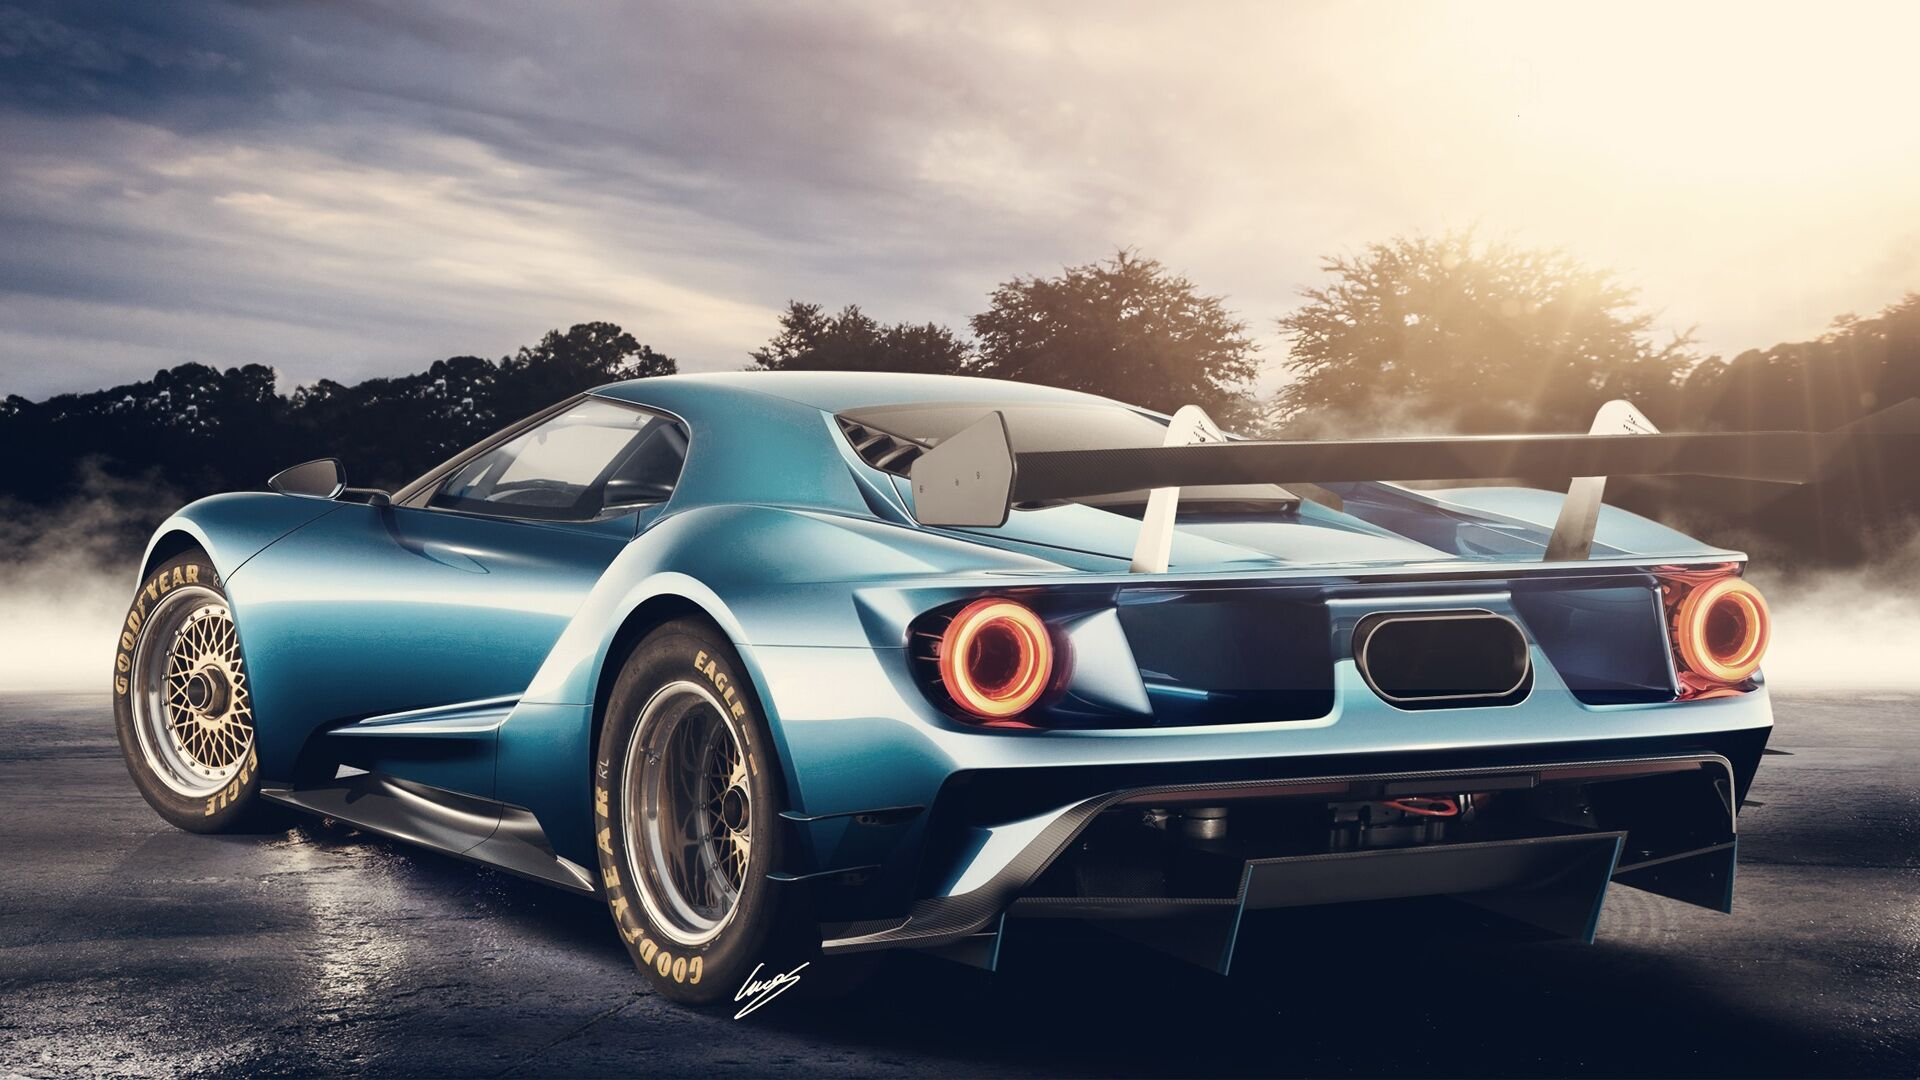 Will Mark The Jaw Dropping Rebirth Of The Even More Powerful Modern Ford Gt